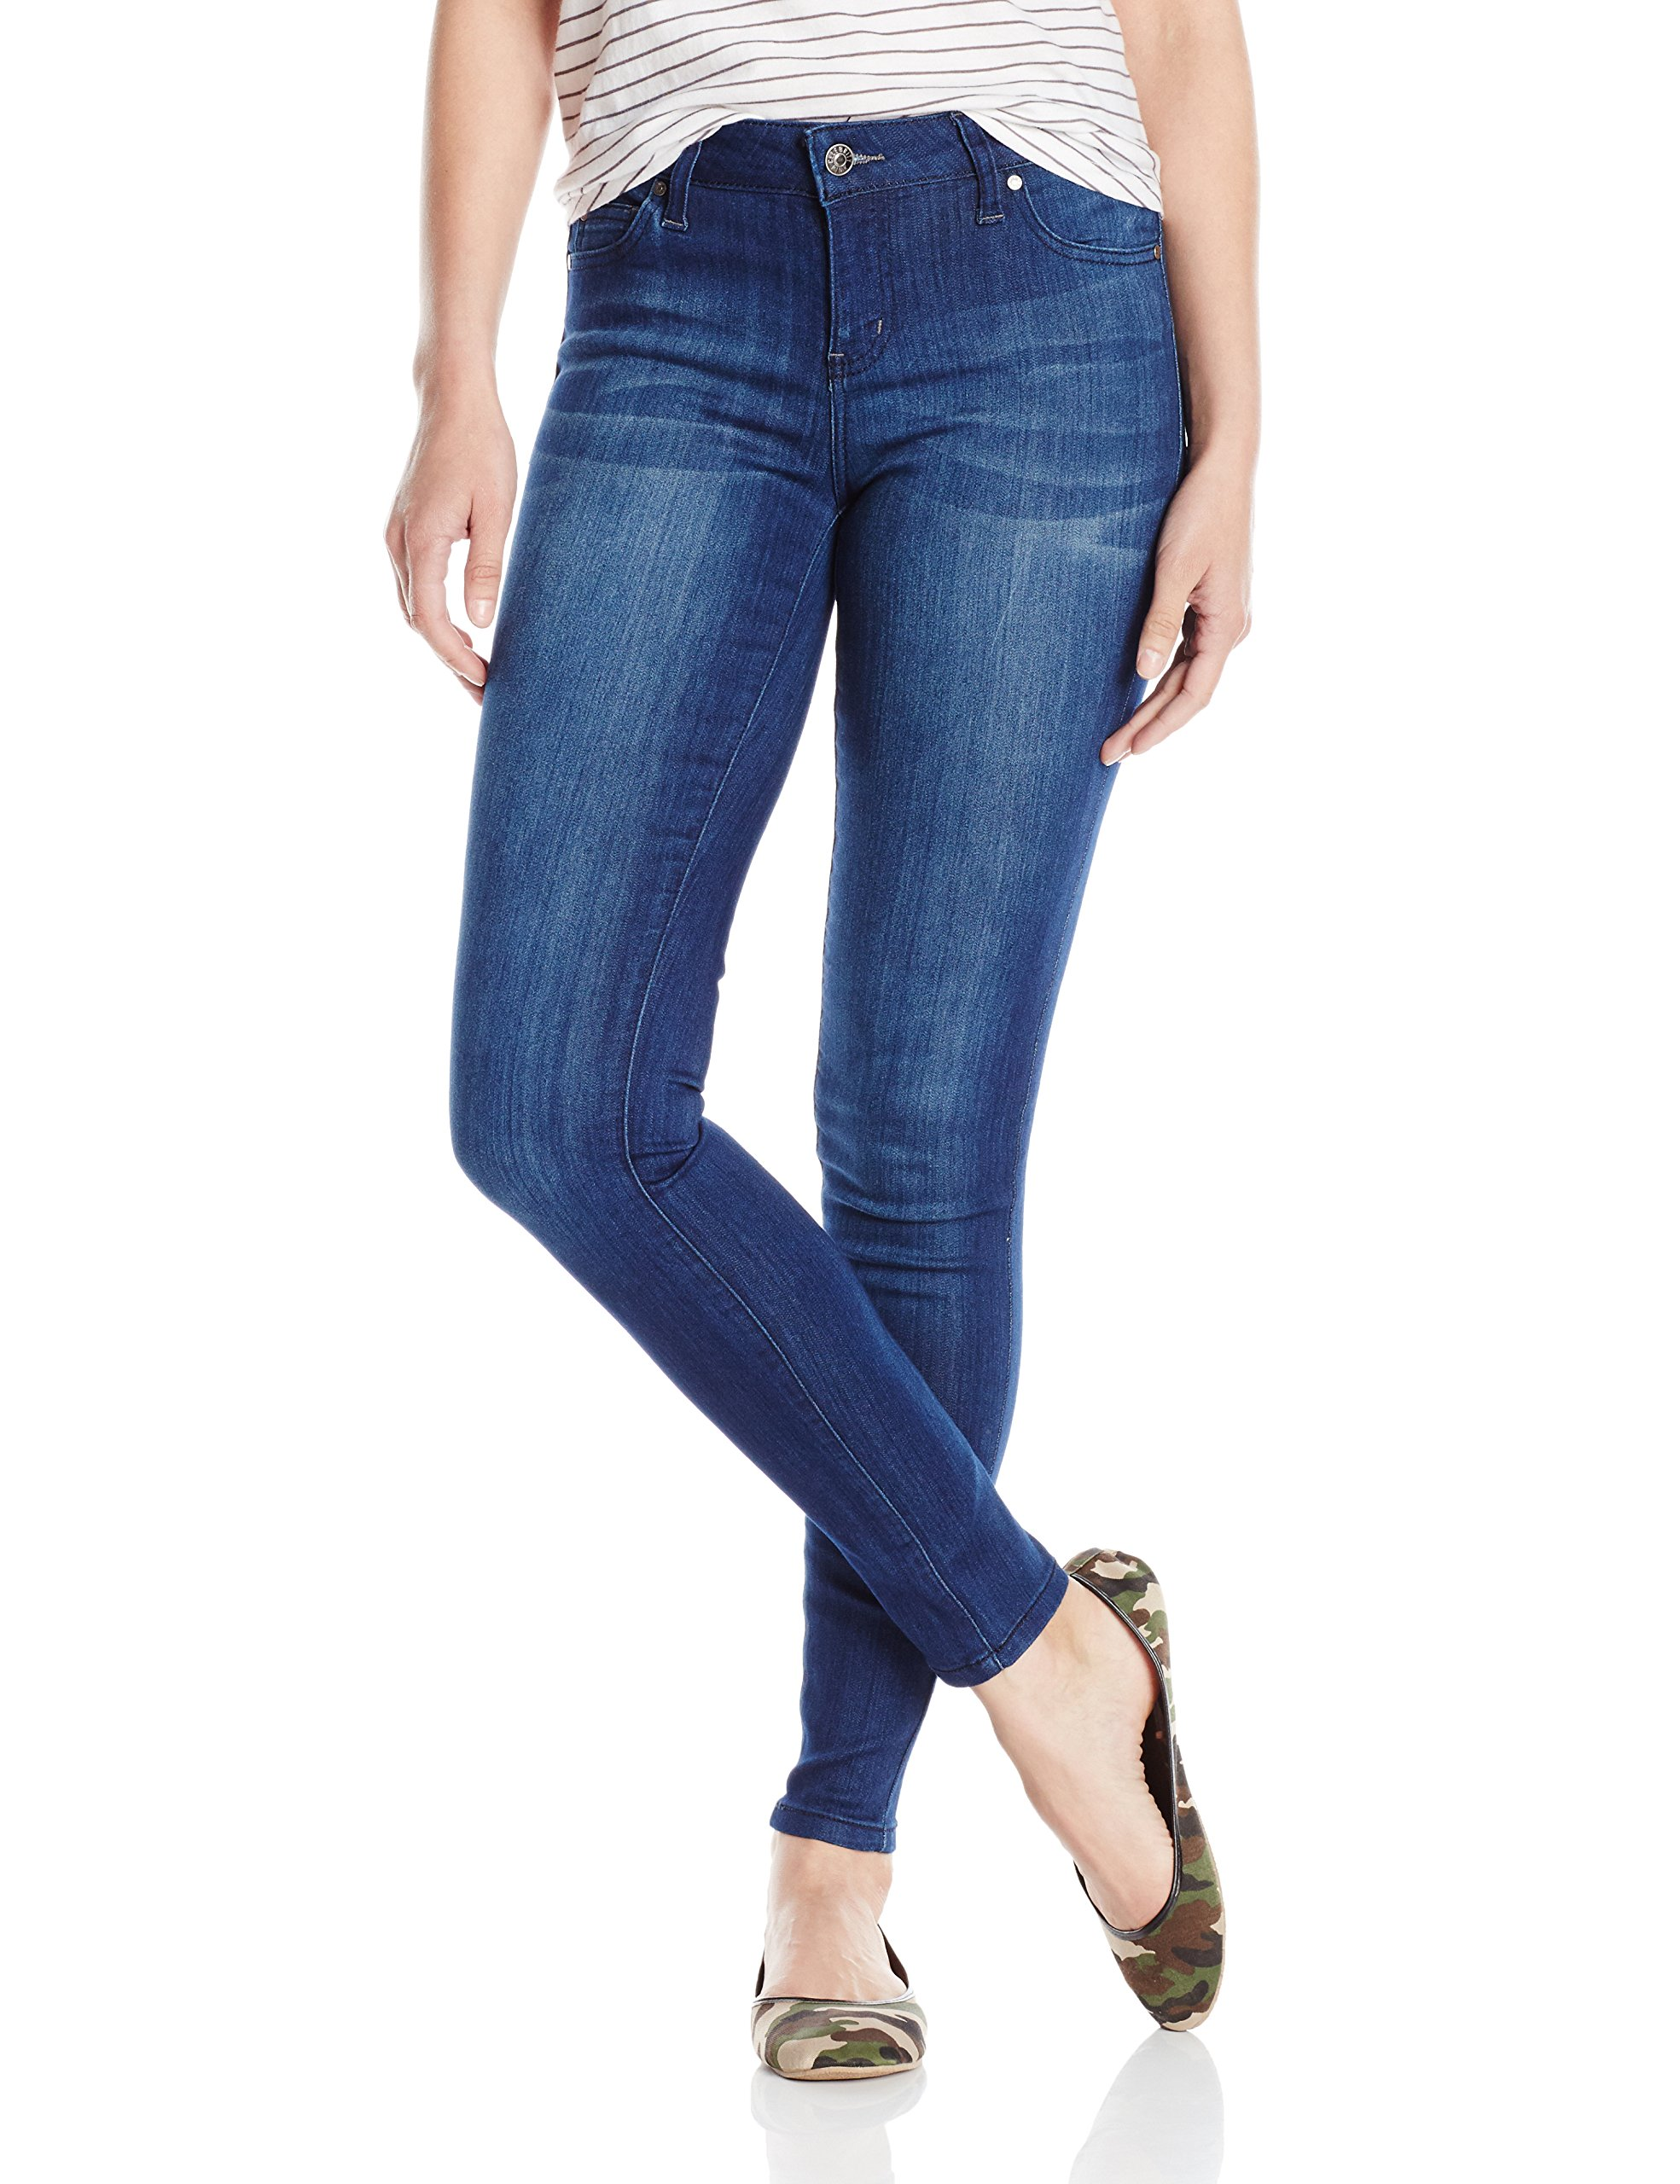 Celebrity Pink Jeans Women's Infinite Stretch Mid Rise Skinny Jean, Vintage Dark, 9